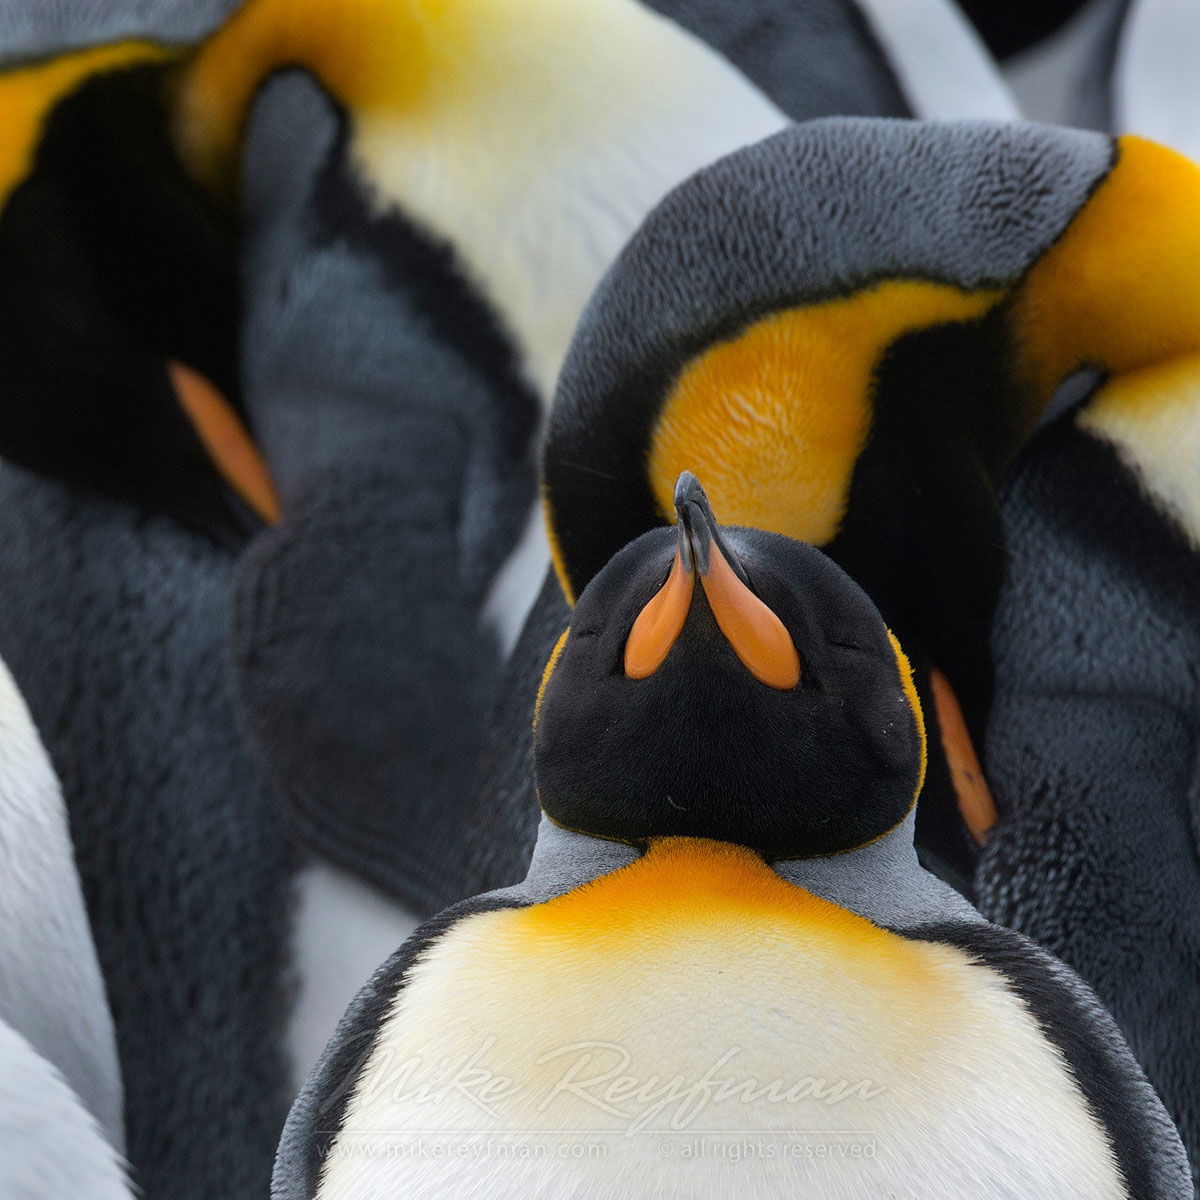 King and Cortege. King Penguins (Aptenodytes patagonicus), Salisbury Plain, South Georgia, Sub-Antarctic - King-Penguins-South-Georgia-Sub-Antarctic - Mike Reyfman Photography